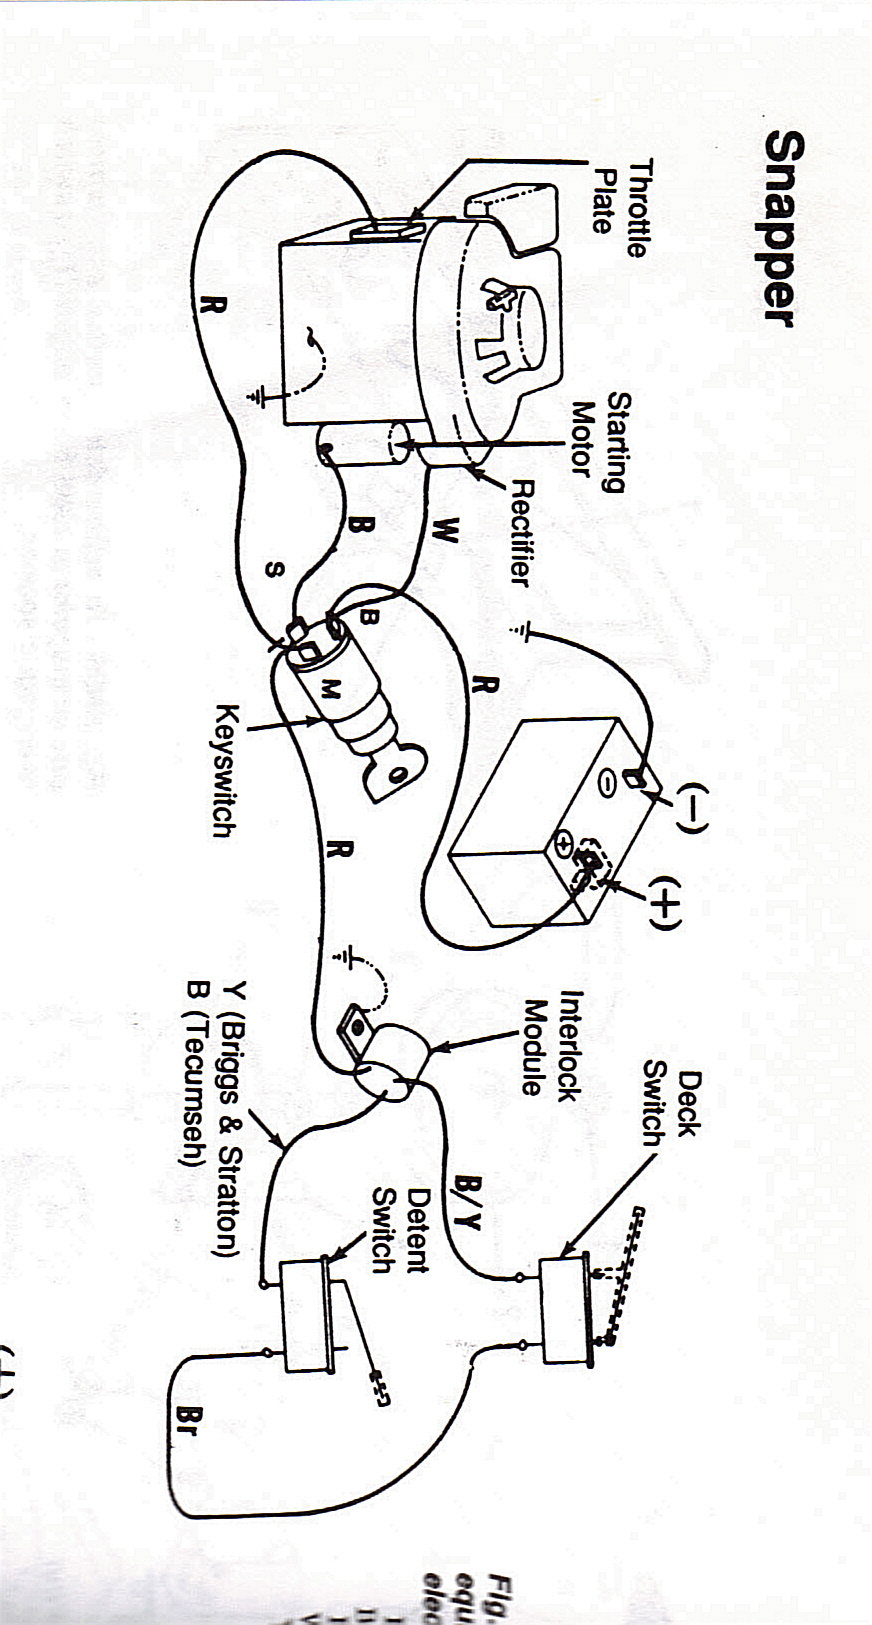 Old Engine Diagram Wiring Library Chinese Scooter Dc Cdi 1a66e634 89a6 4250 9bff 6f1fed21c998 Snapper I Need A